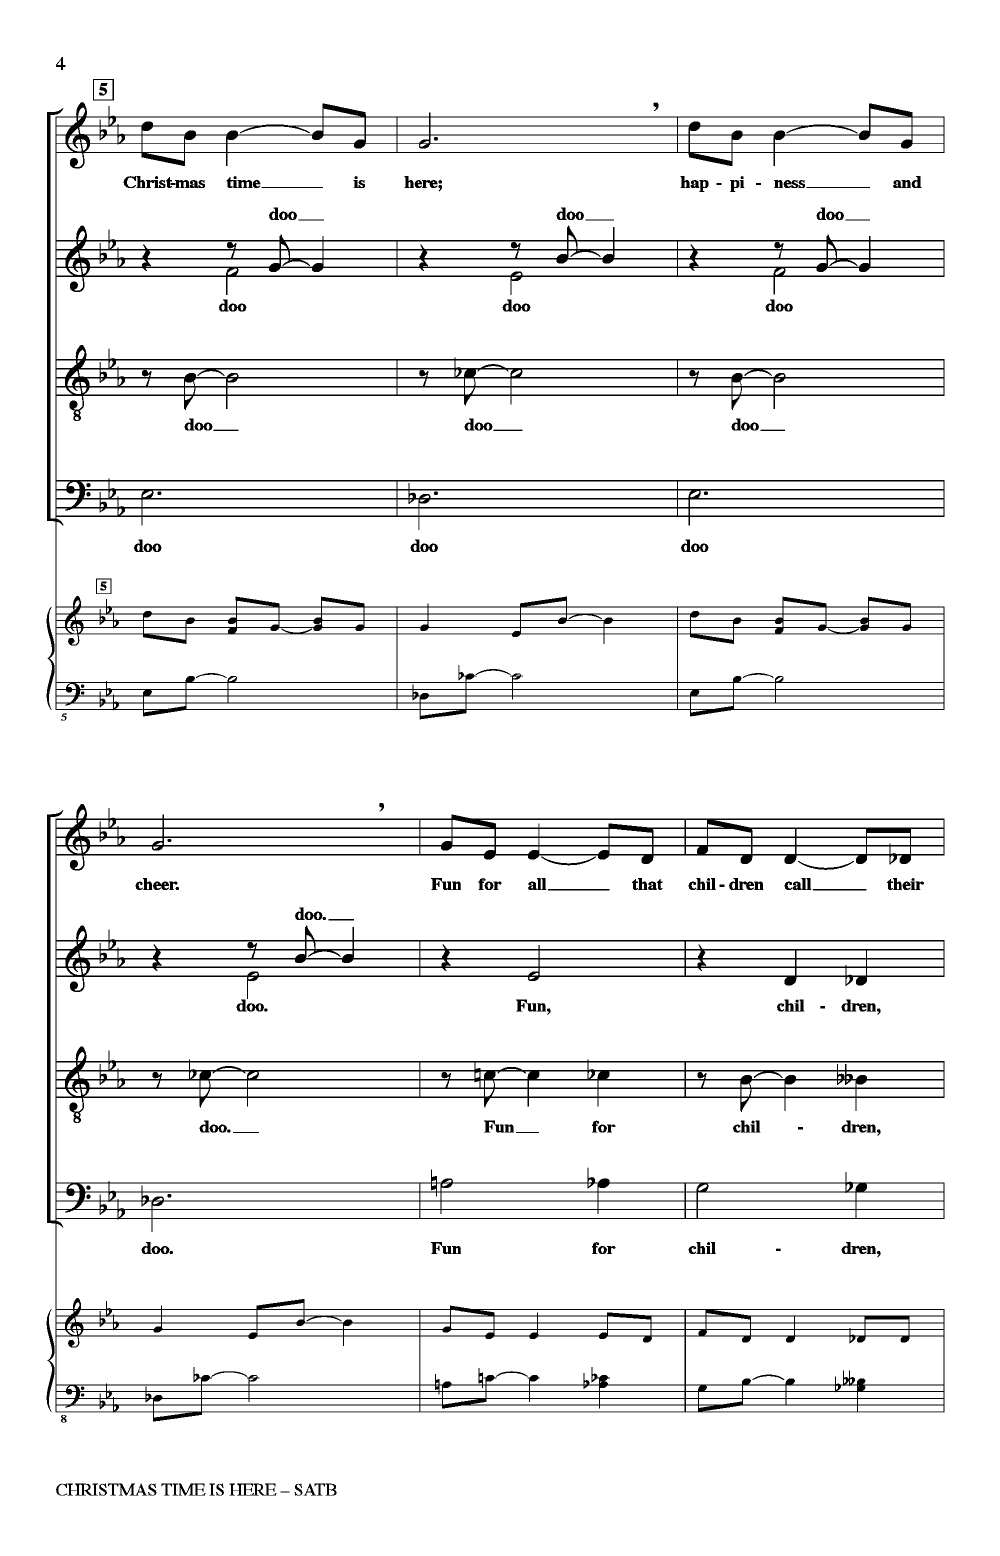 christmas time is here thumbnail - Christmas Time Is Here Sheet Music